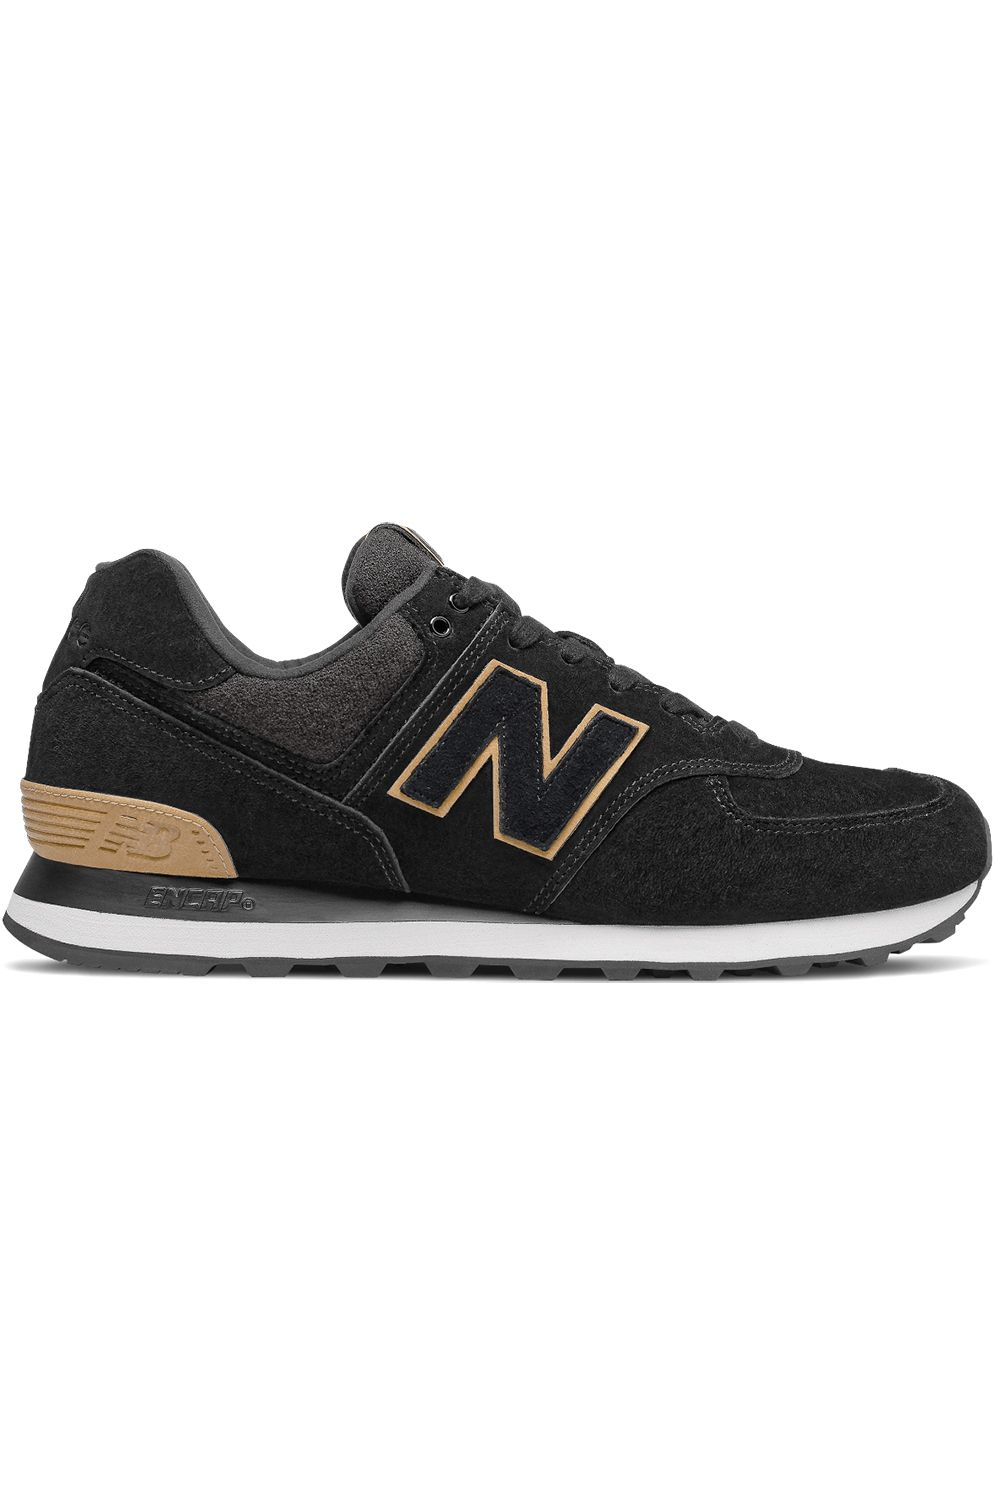 Tenis New Balance ML574 Black/Yellow